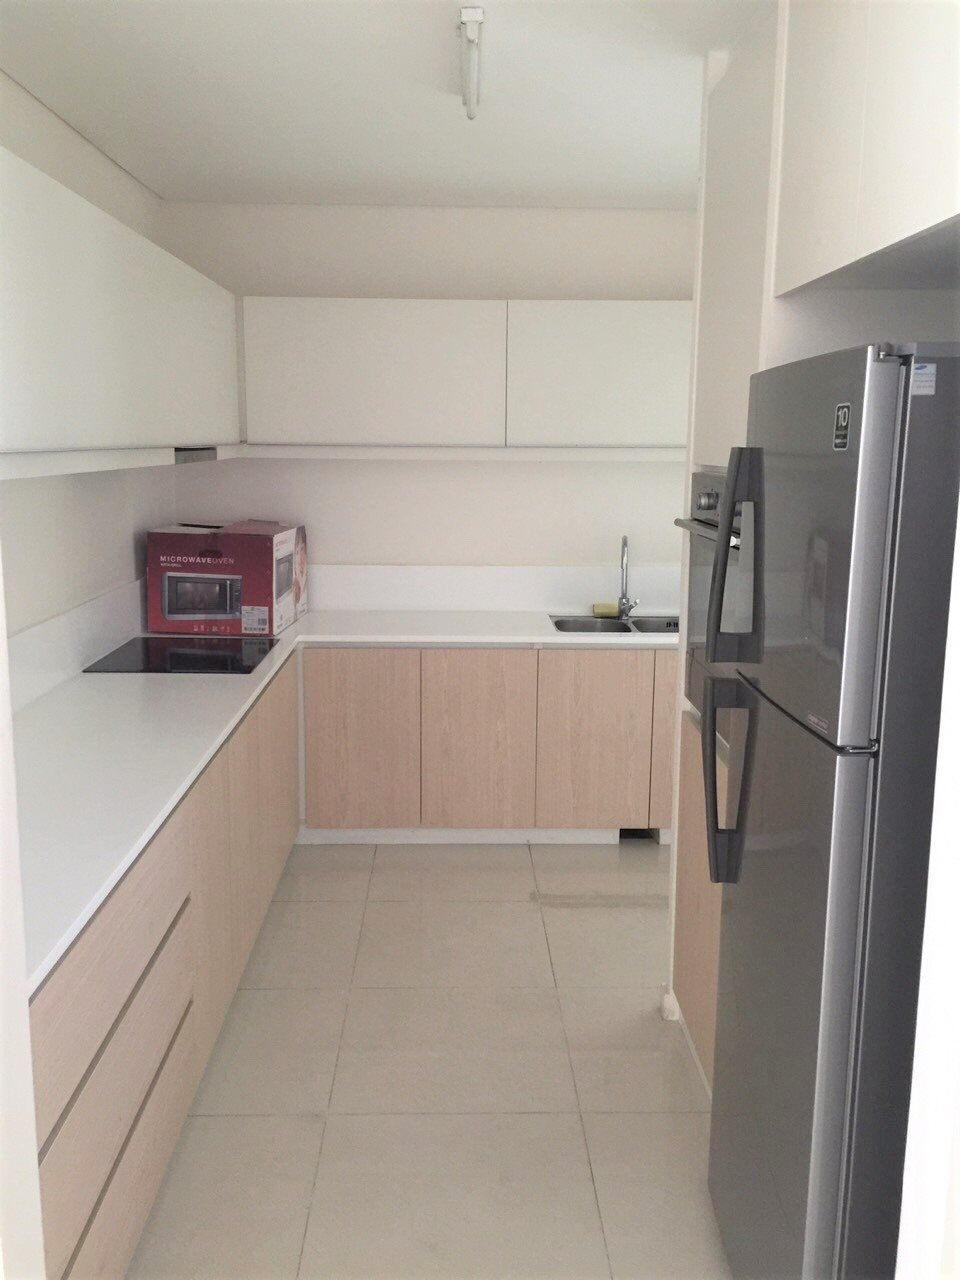 Apartment for rent D201484 (3)